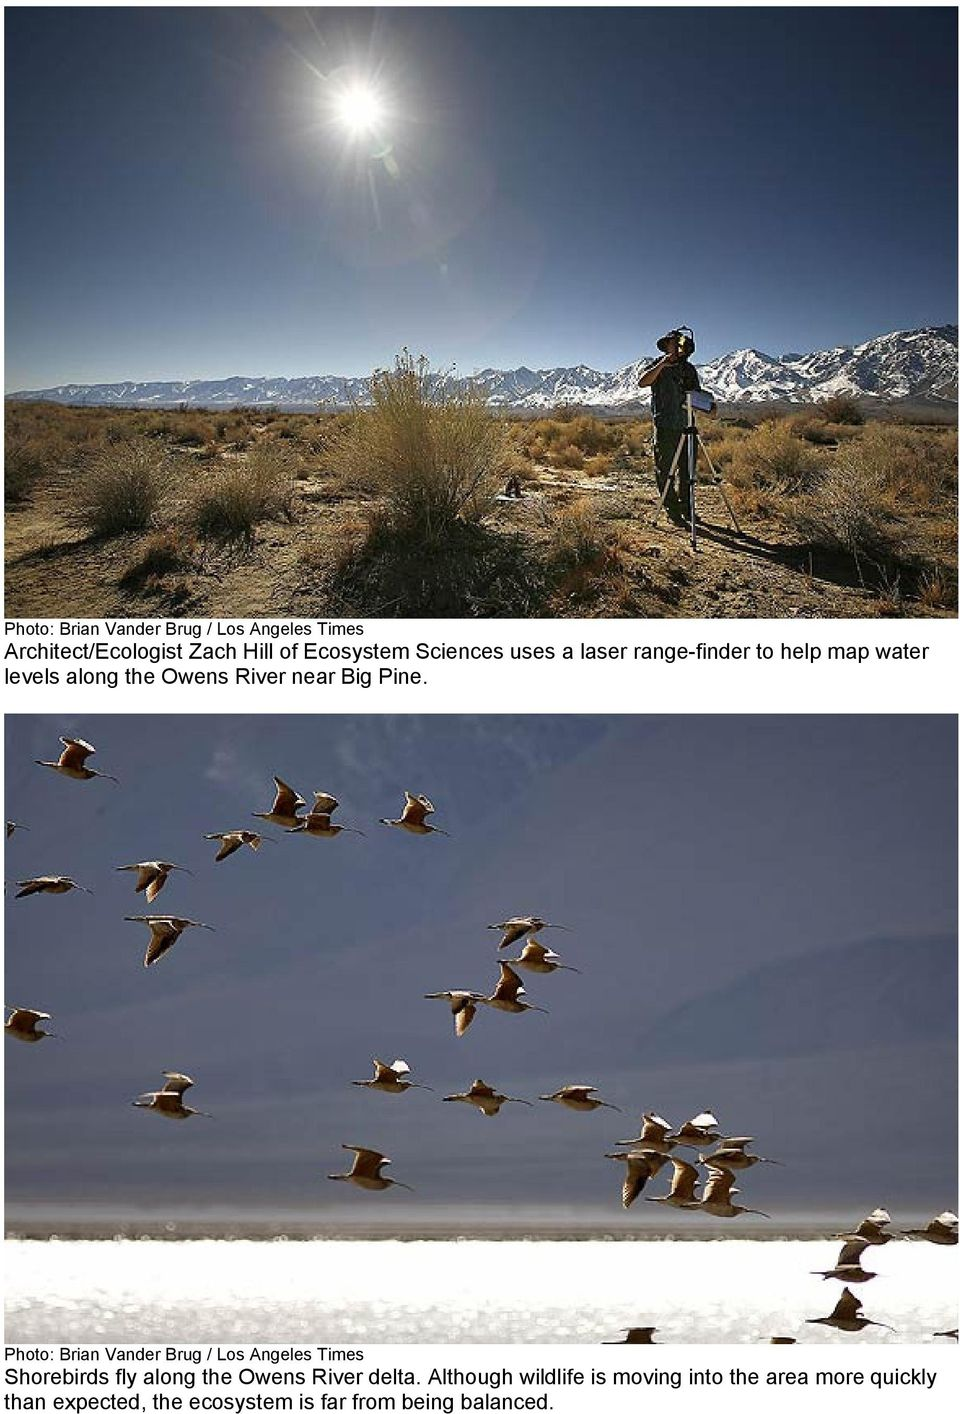 Shorebirds fly along the Owens River delta.